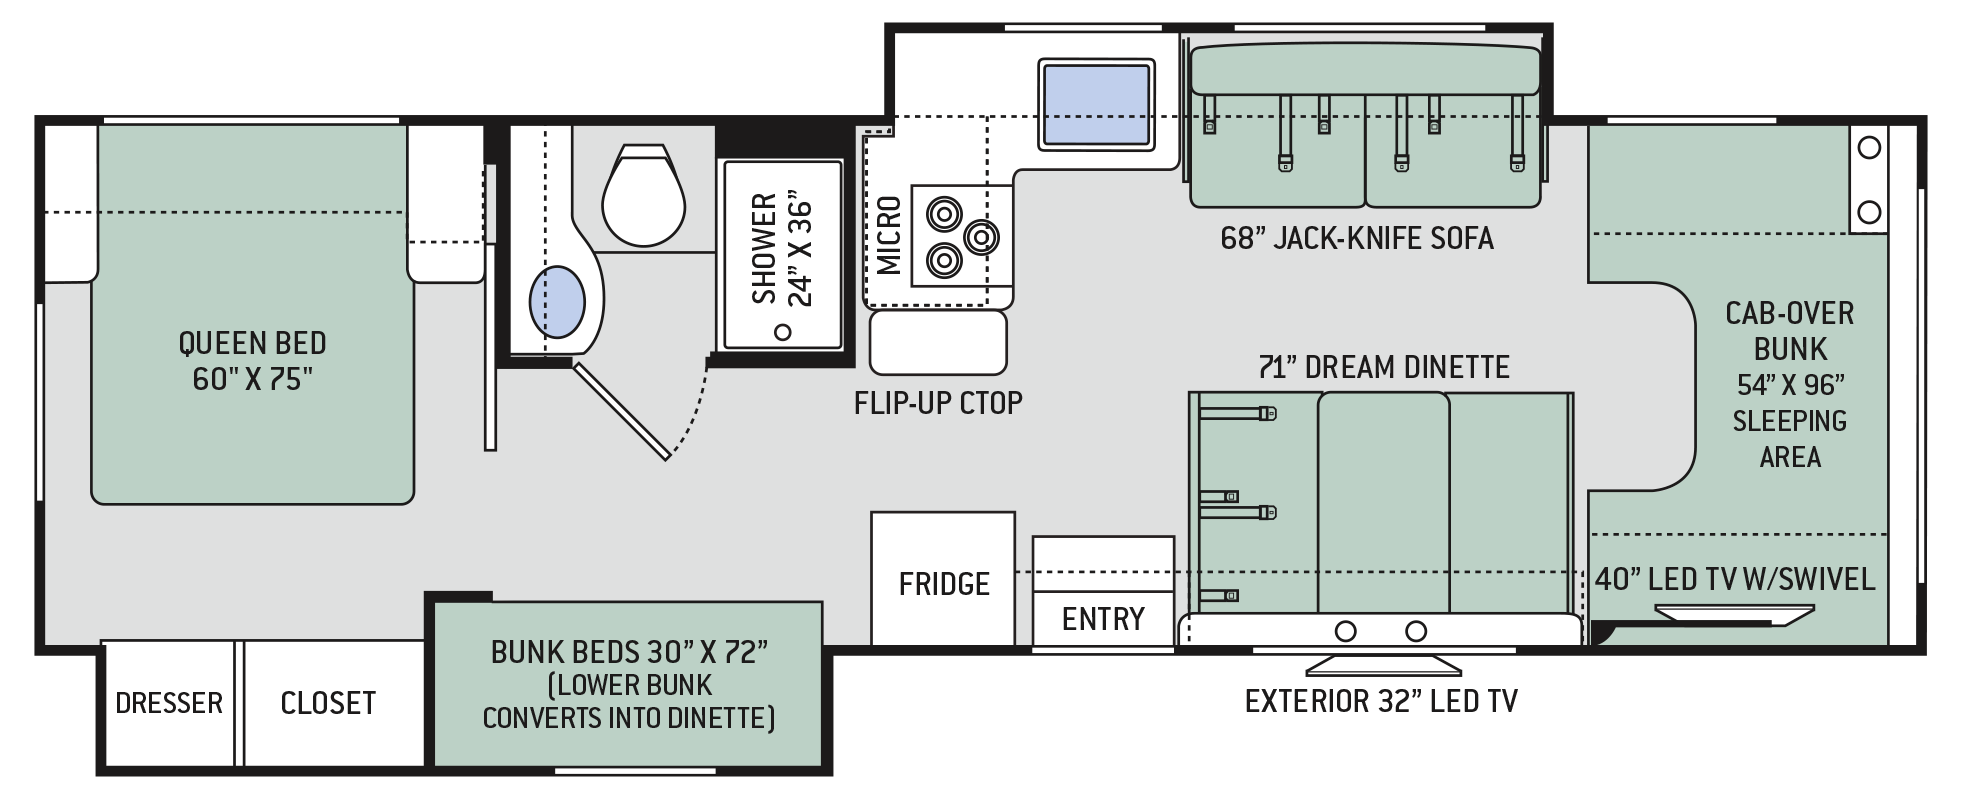 Top 25 Albuquerque Nm Rv Rentals And Motorhome Outdoorsy 1987 Southwind Wiring Diagrams